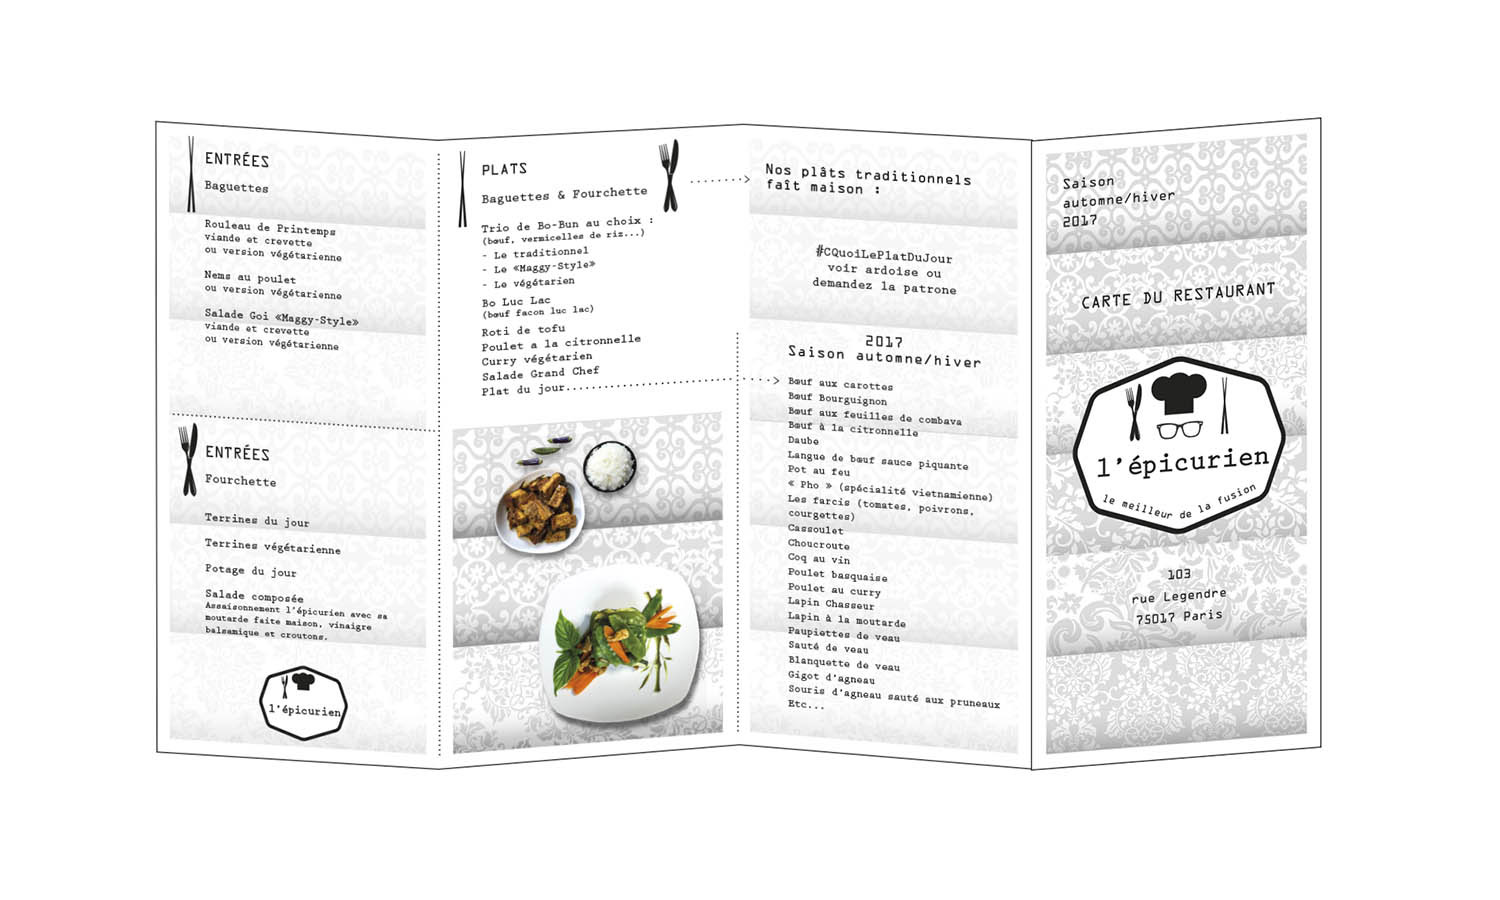 008_L_EPICURIEN_MENU